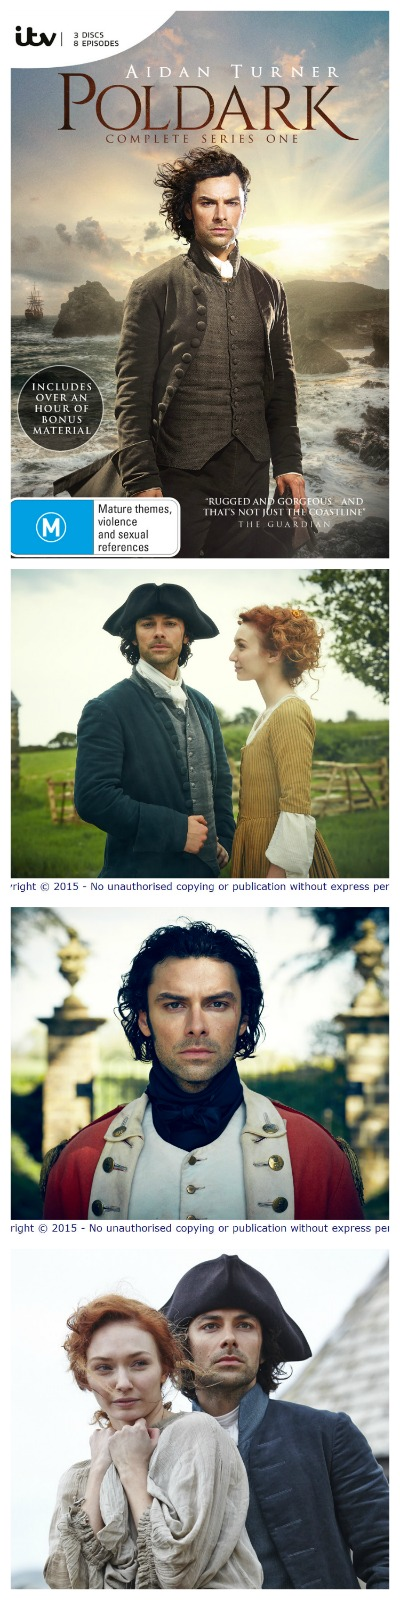 Poldark Series 1 review